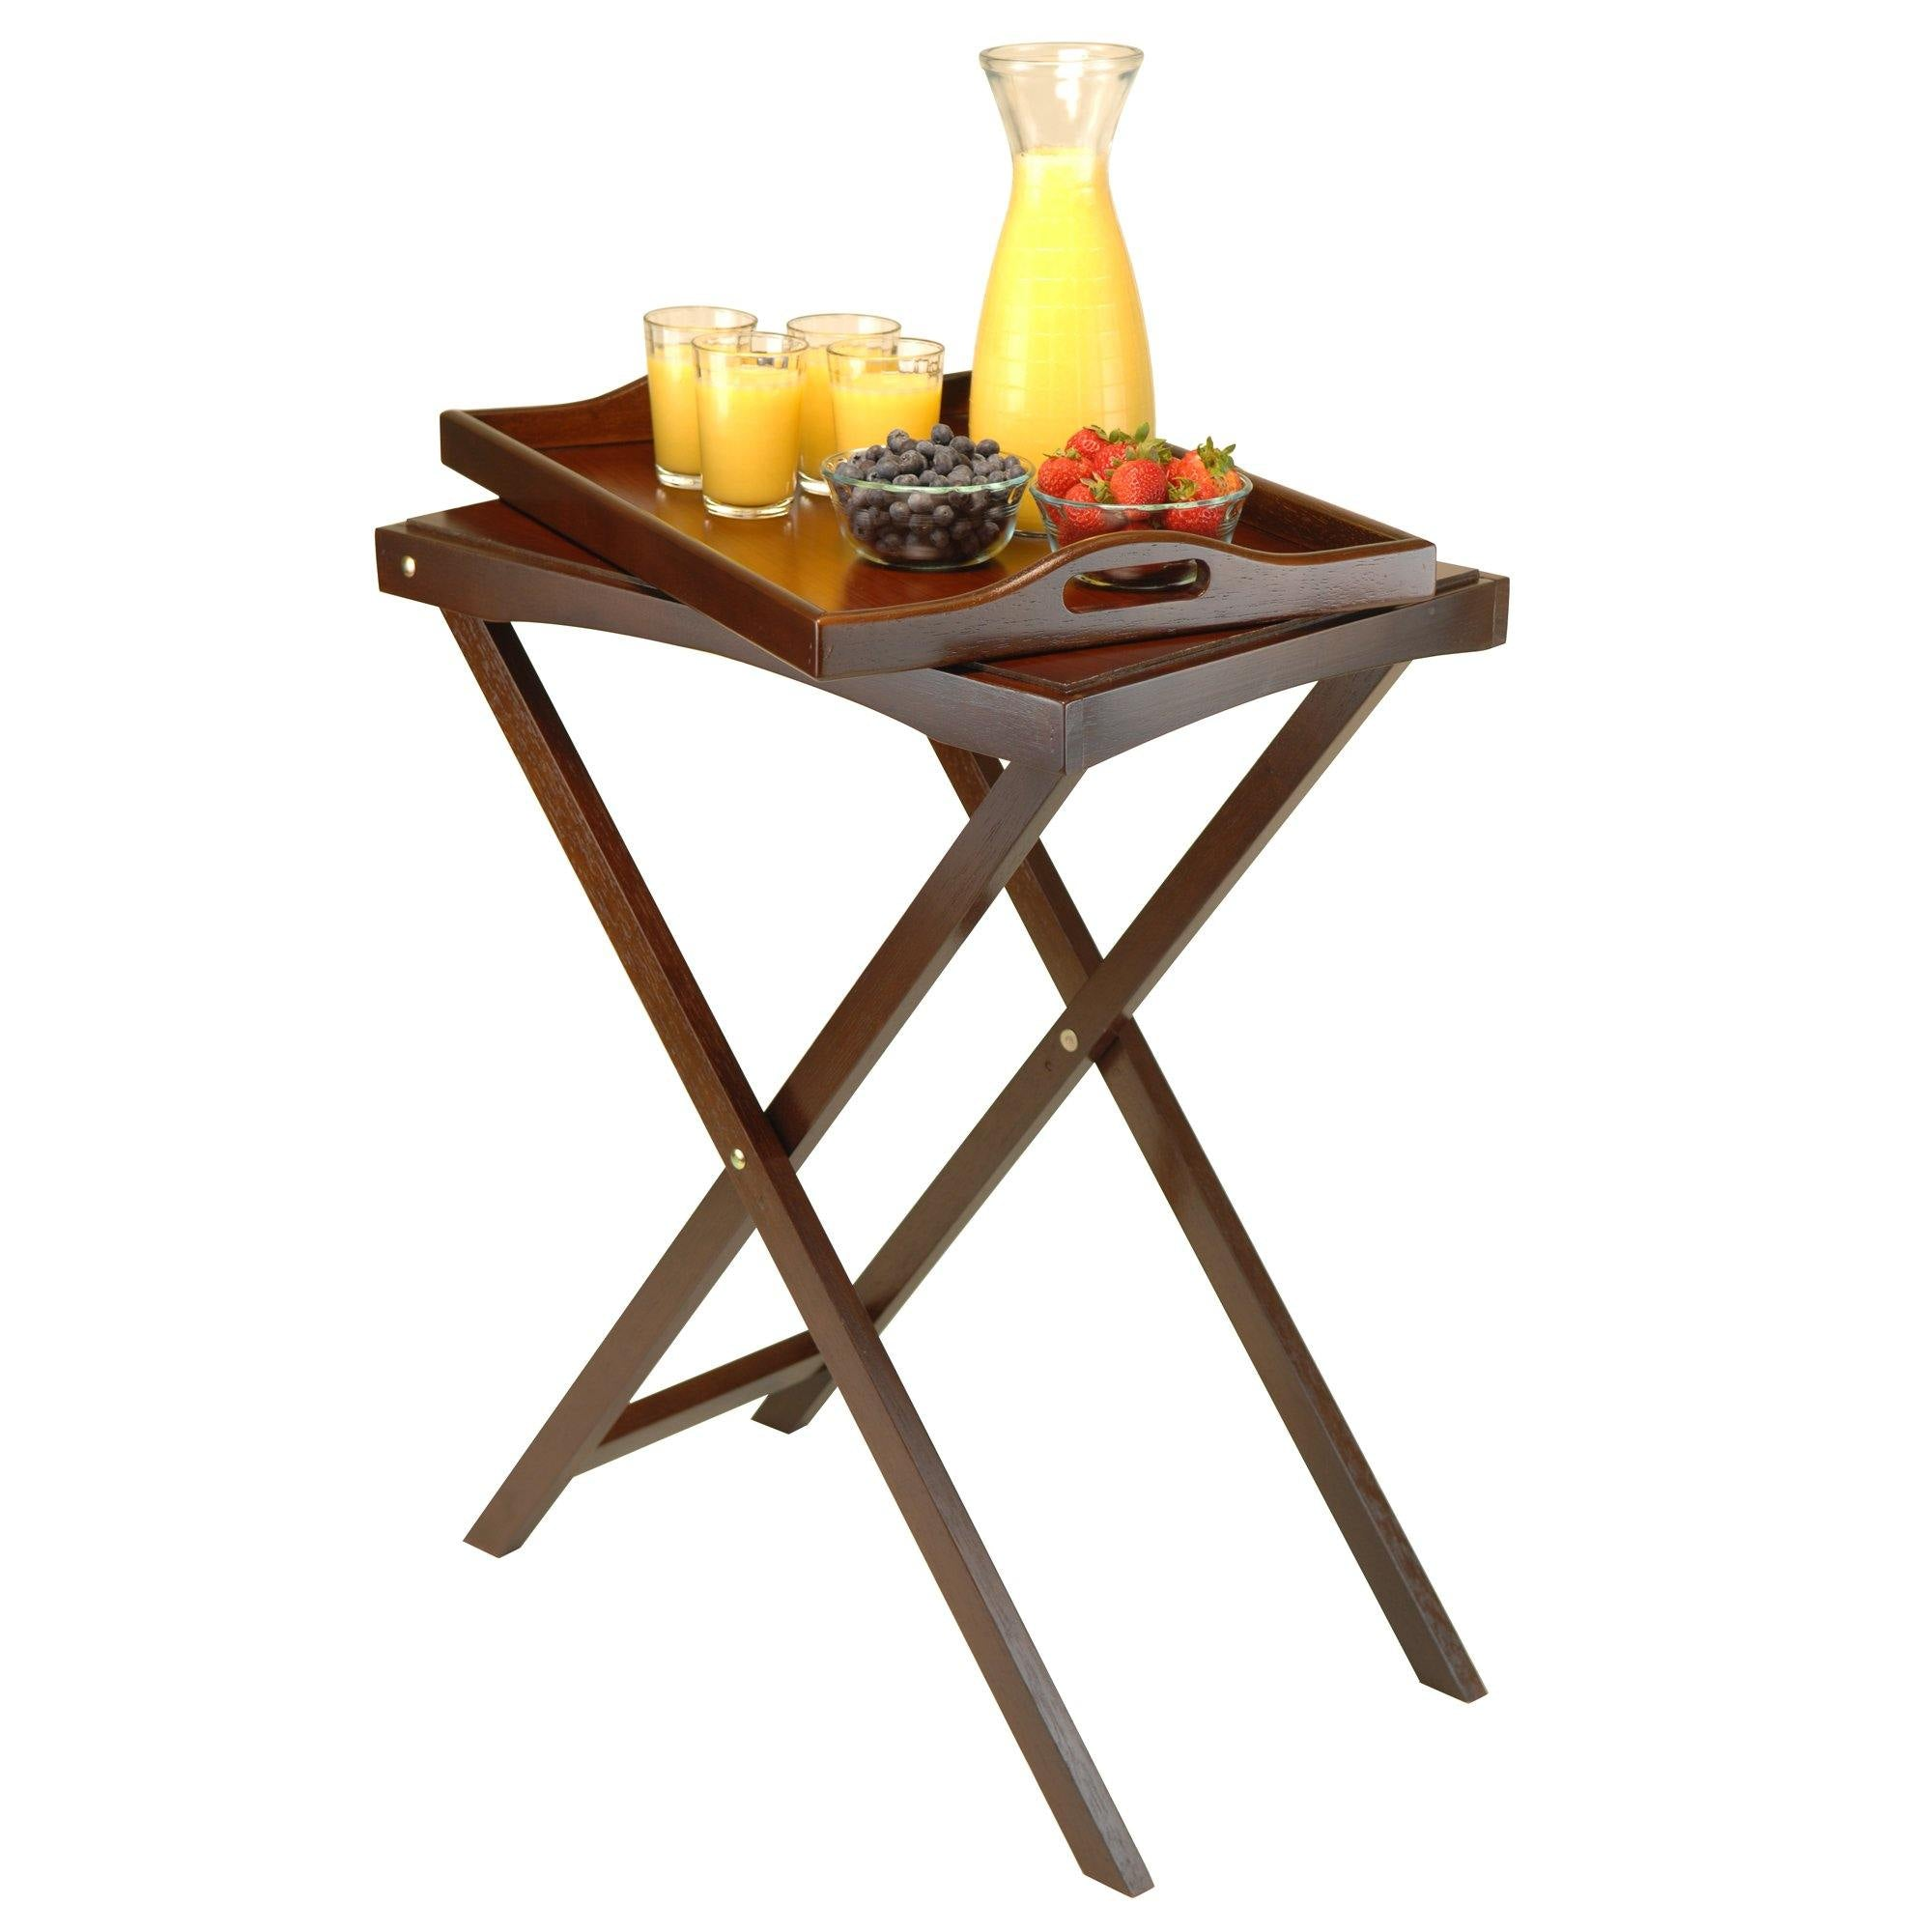 Devon Butler Table with Serving Tray - My USA Furniture